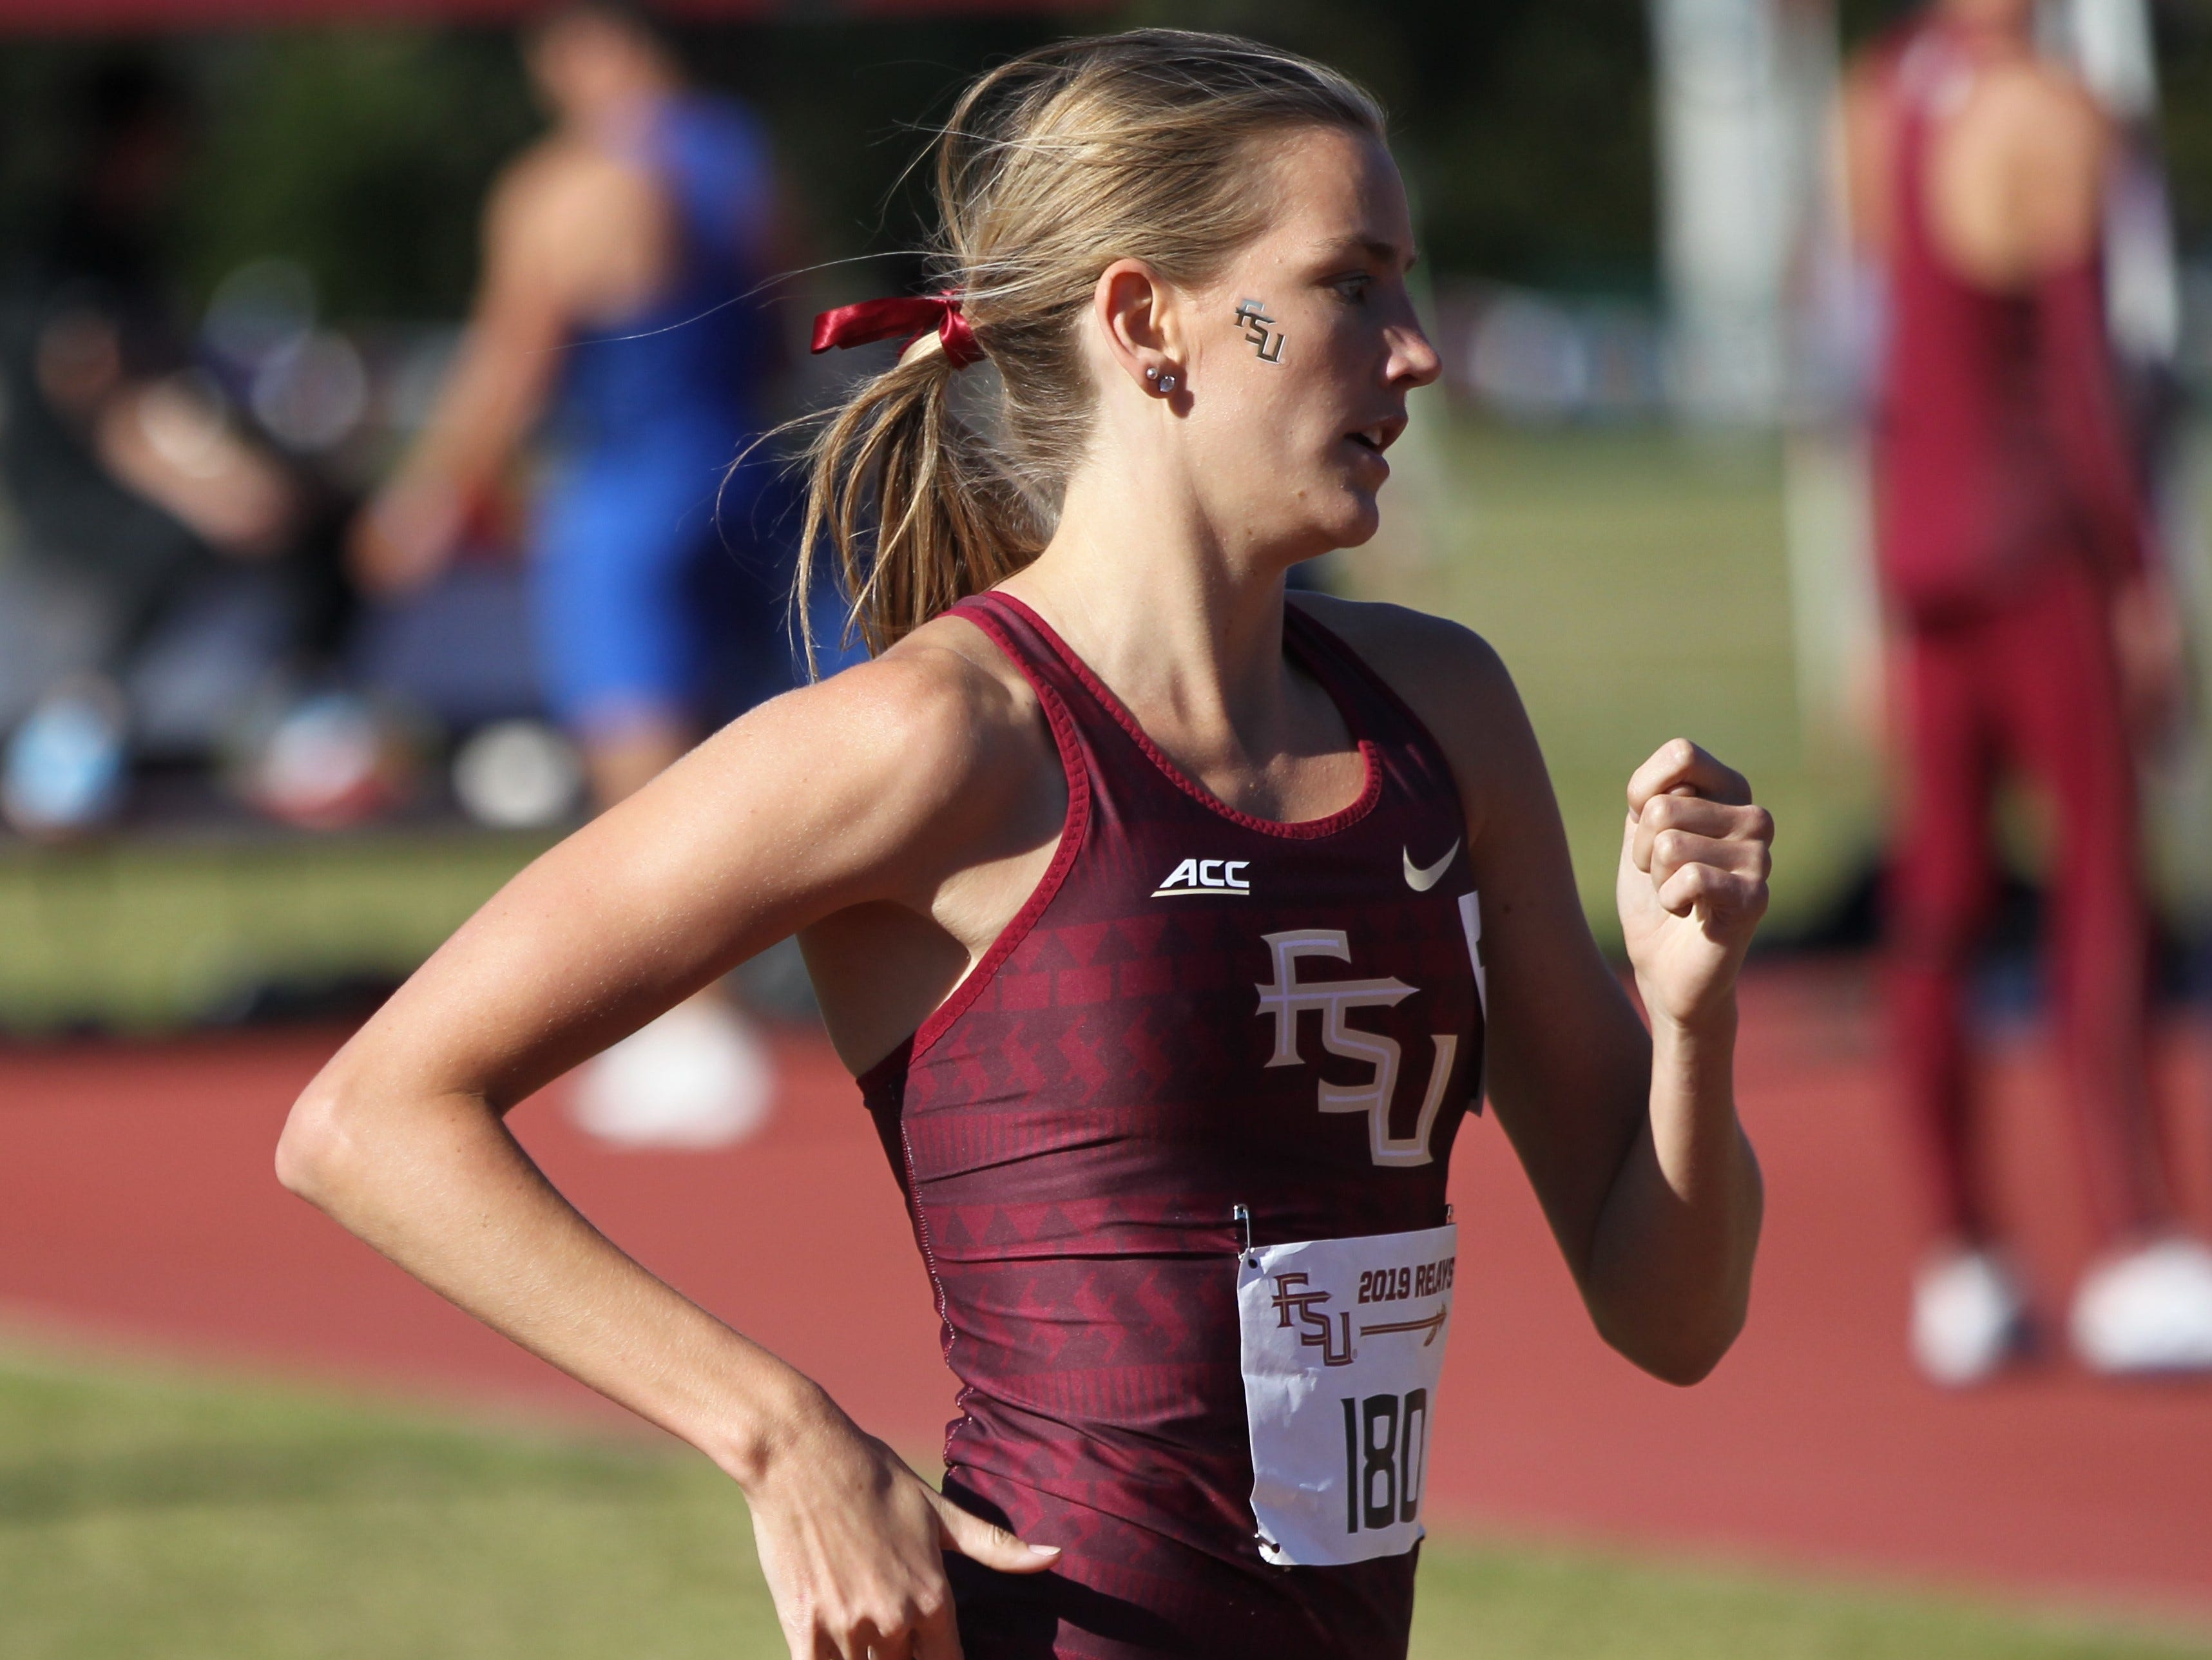 Florida State sophomore Maudie Skyring races the 1500-meter run during Friday's college portion of the FSU Relays at Mike Long Track on March 22, 2019.